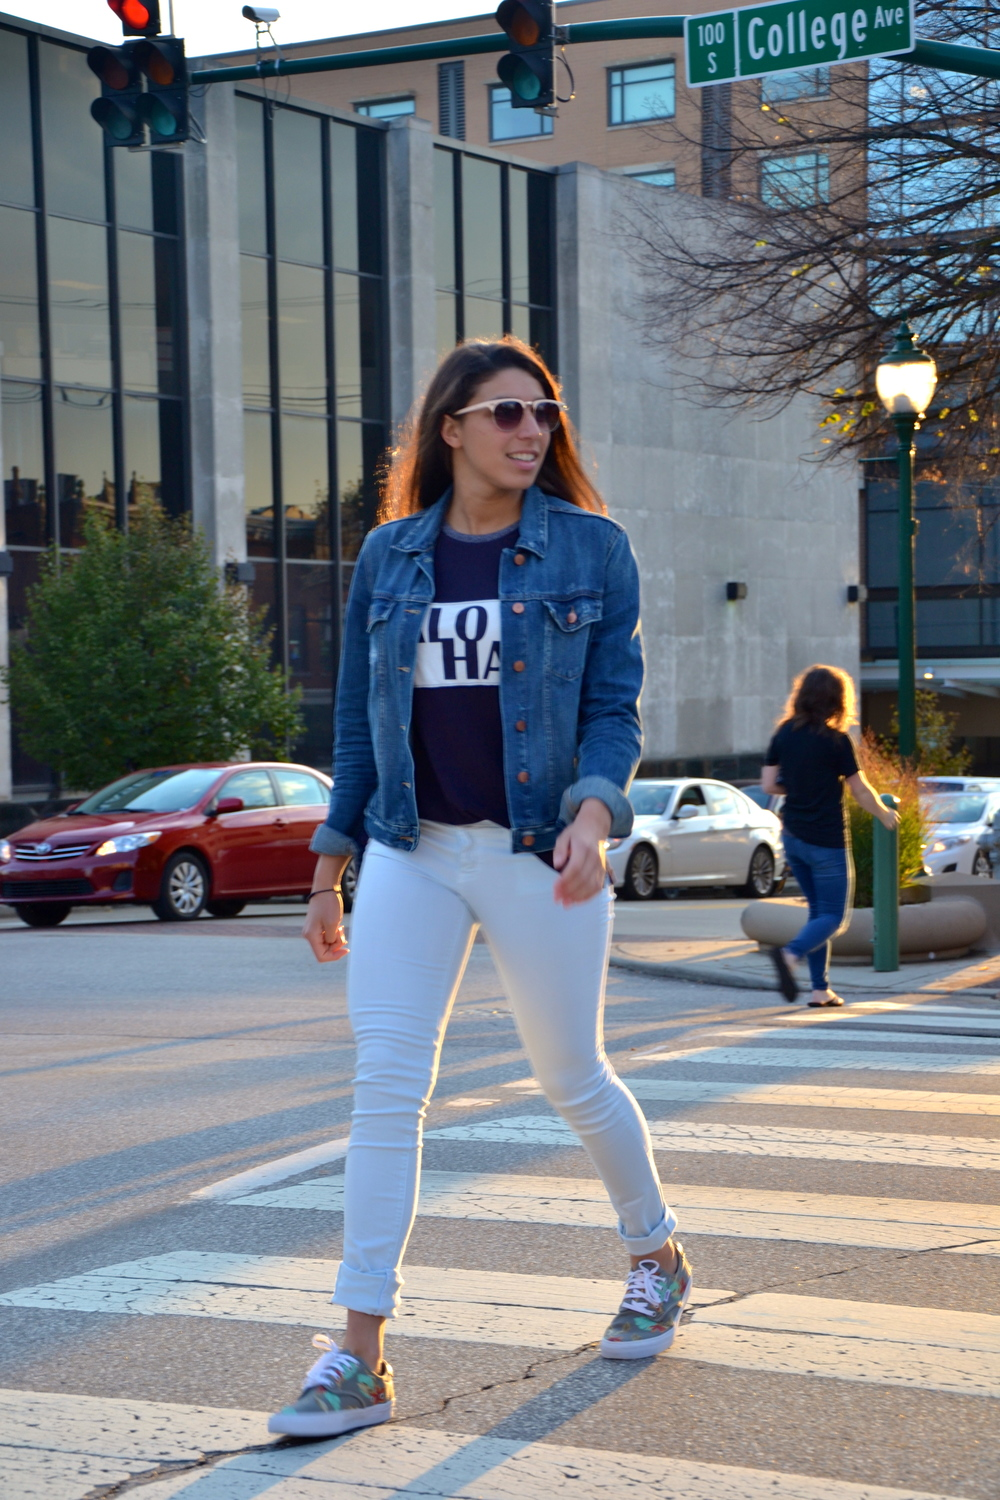 Still looking for that perfect fit go-to jean jacket? Well here is one that you should definitely consider! I find myself reaching for this jacket several times a week! It's easy, comfortable, and matches with close to everything. It also can make a look seem more casual if thats what you are going for!